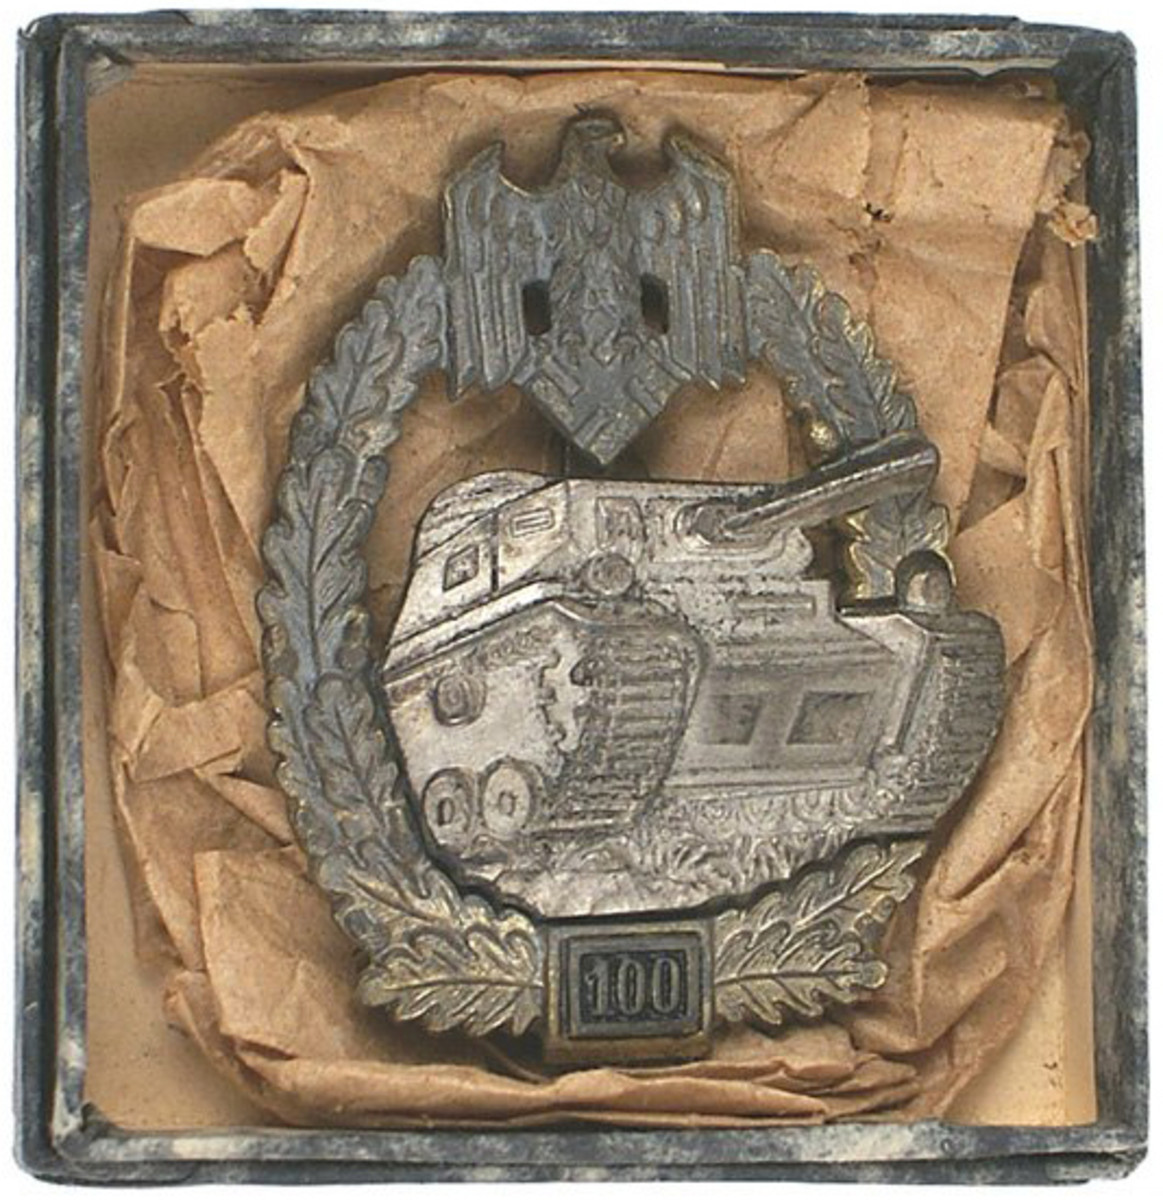 German World War II Panzer assault badge, awarded for 100 military engagements ($9,000).